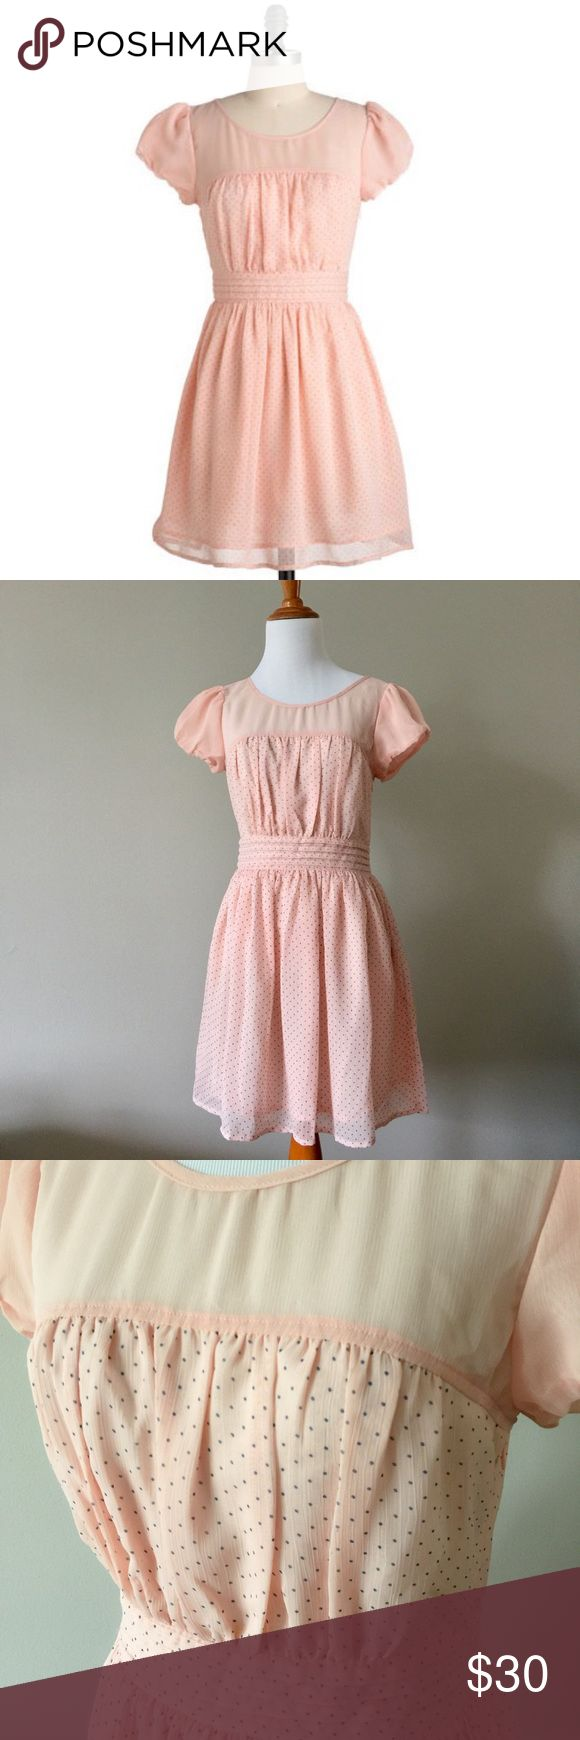 NWOT ModCloth Holiday Weekend Dress in Saturday NWOT. Never worn. Cap sleeves. Side zip. Keyhole back opening. Lined chiffon fabric. Light pink with polka dot print. Brand: Moon Collection. ModCloth Dresses Mini